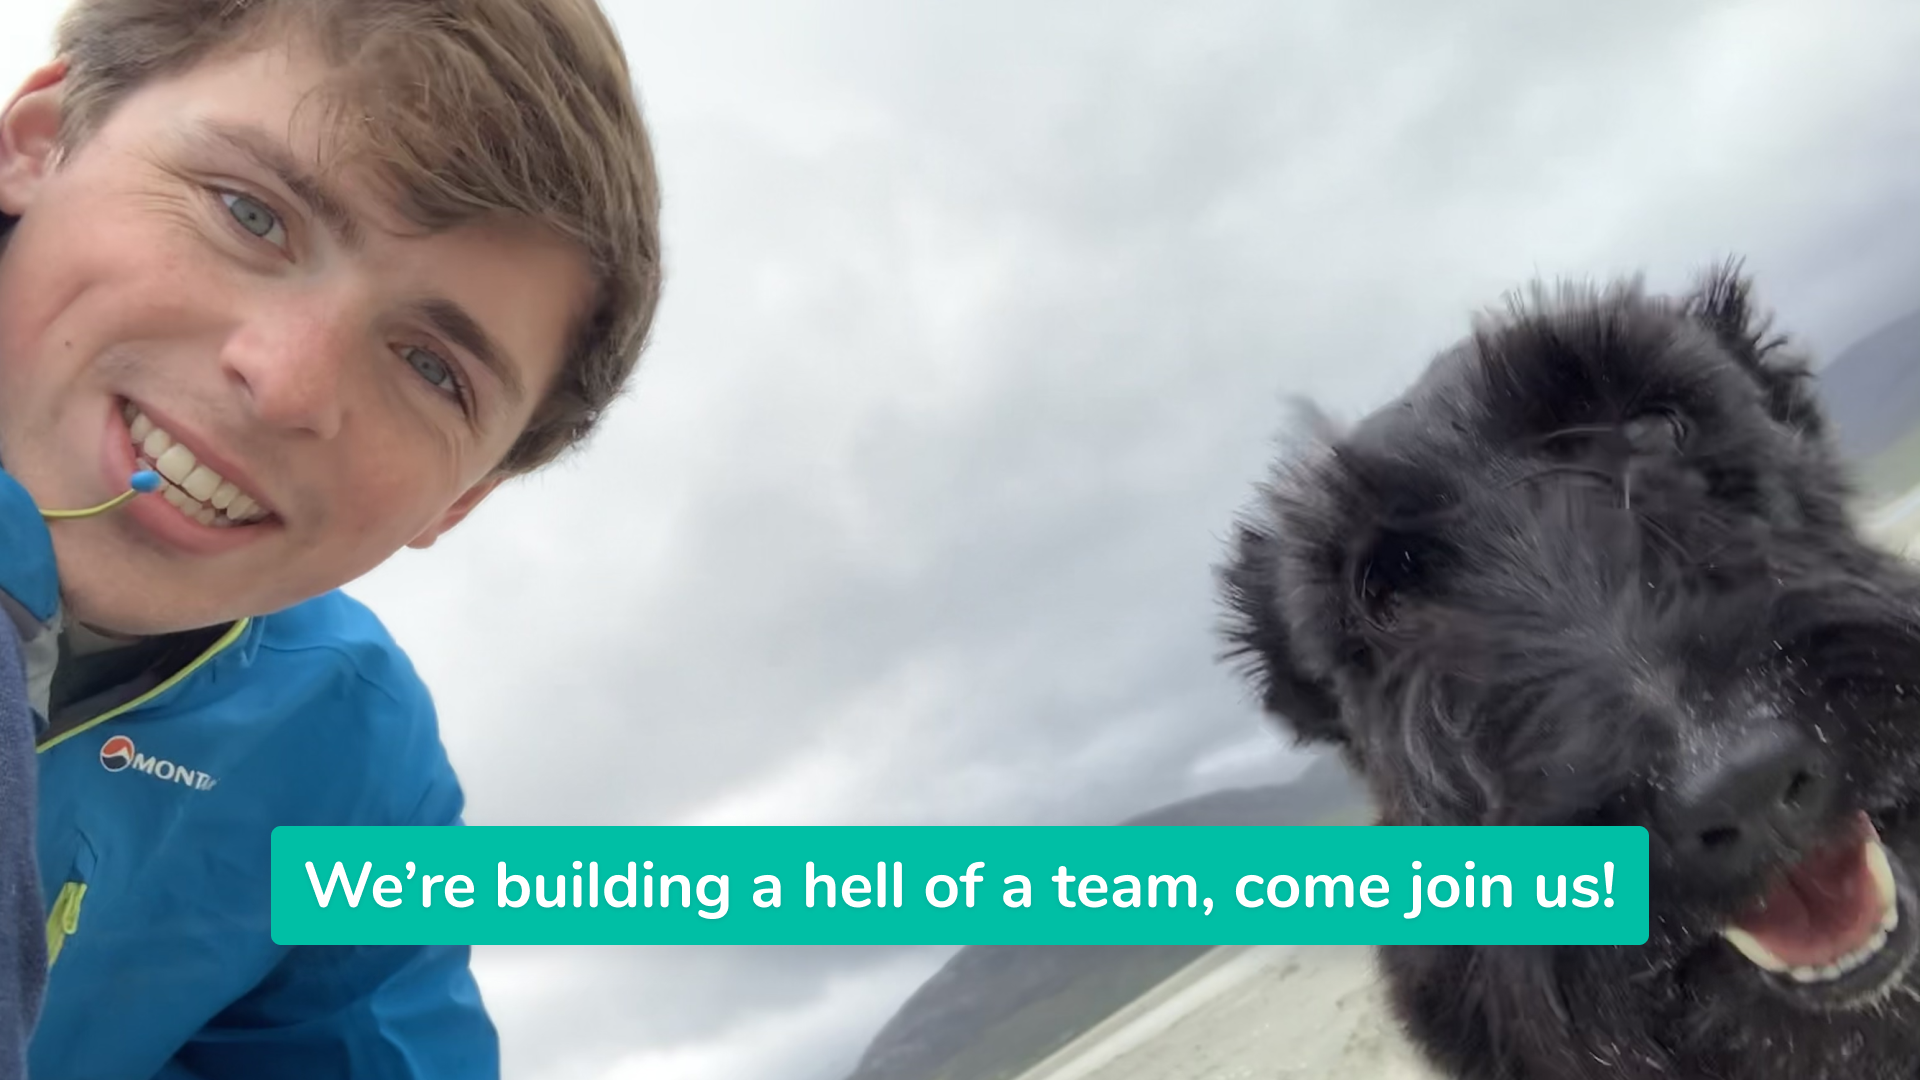 Winnie wants you, to join our team